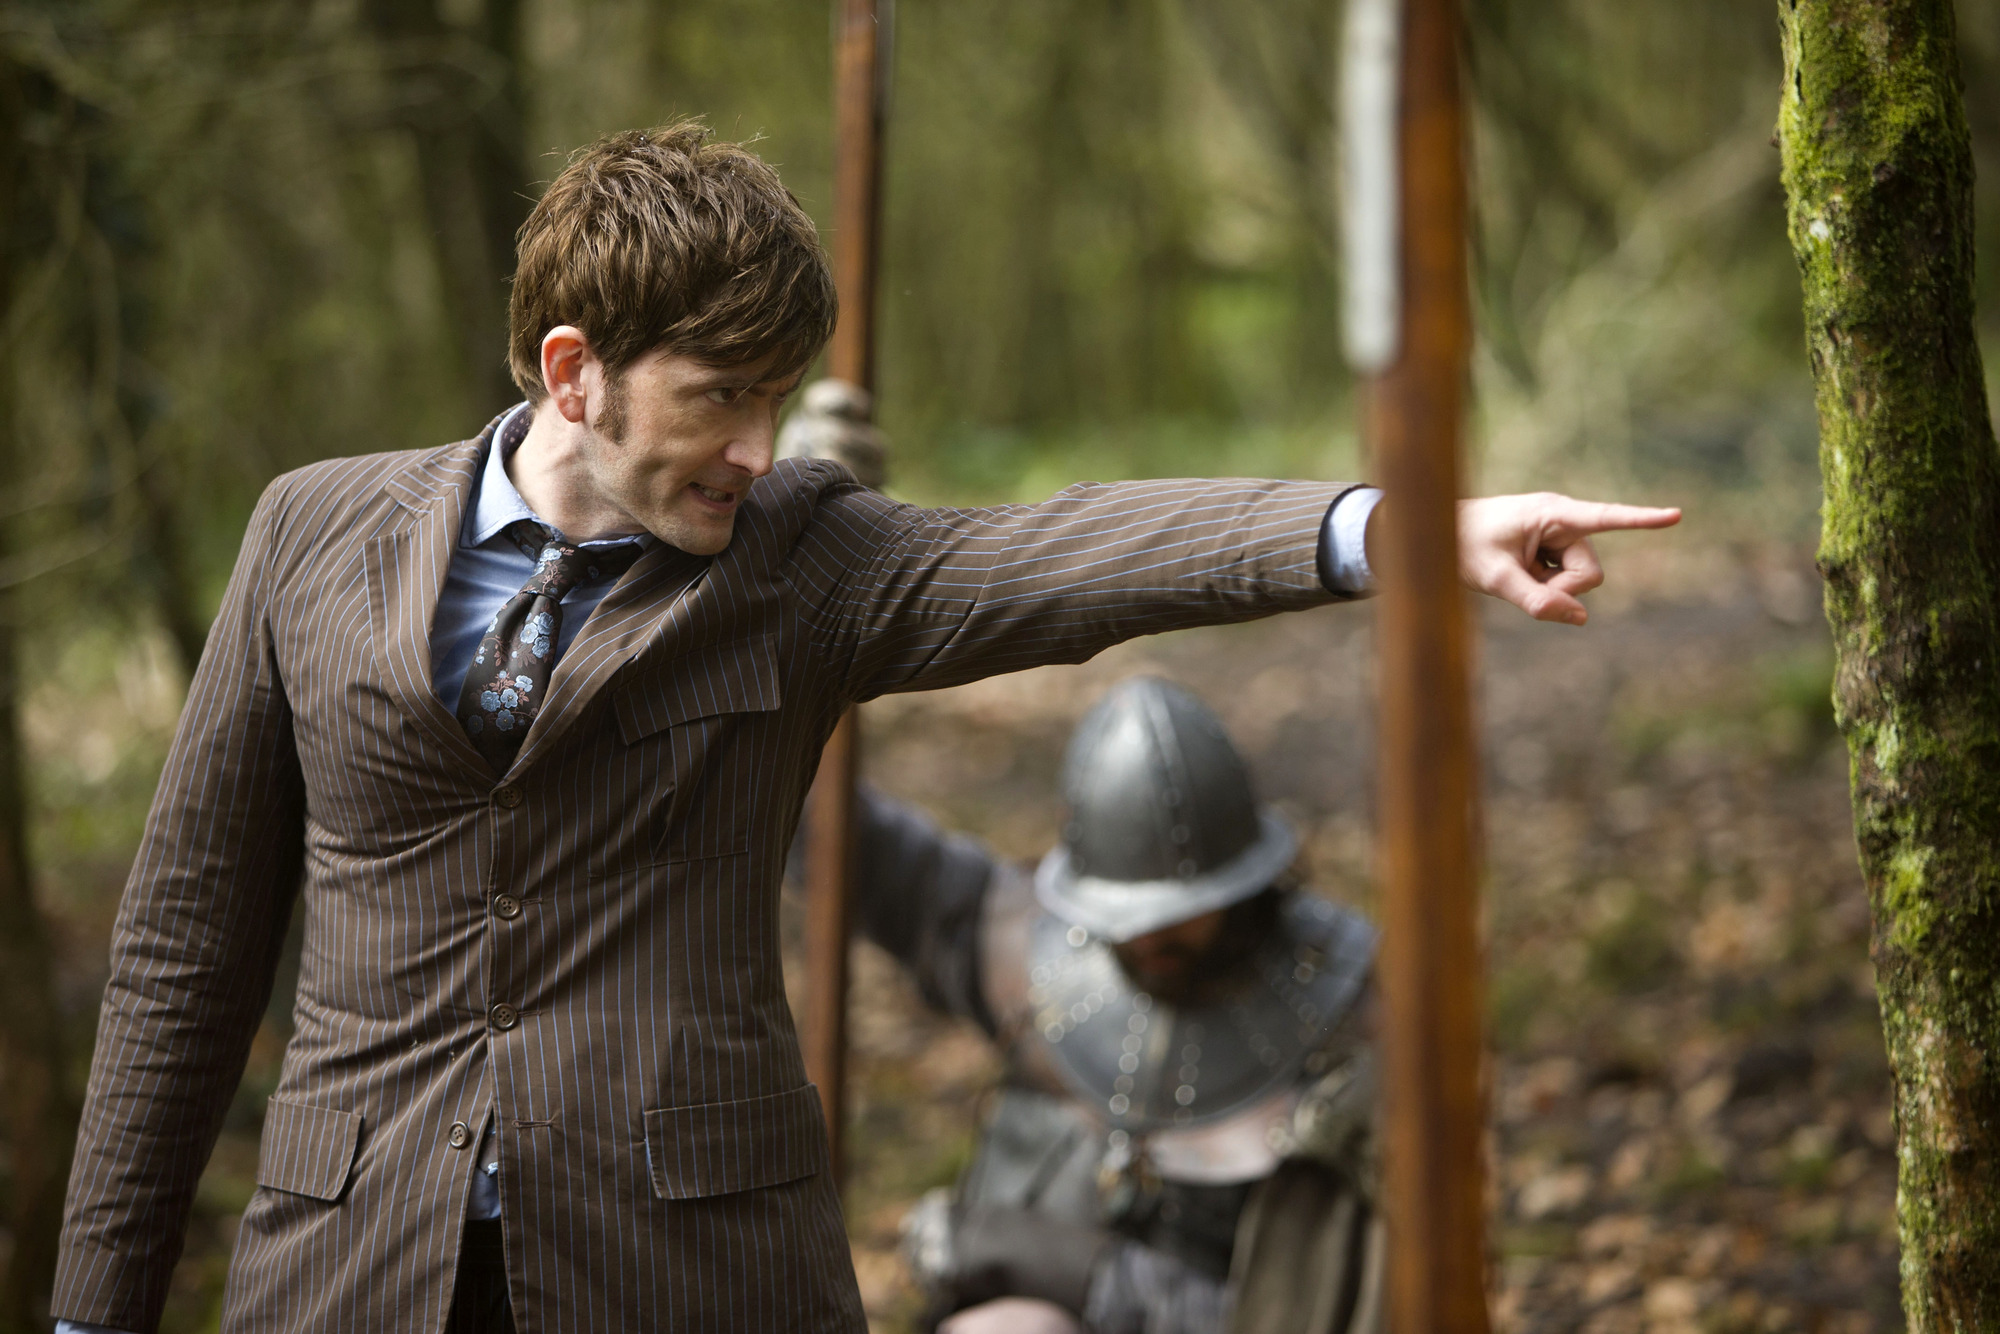 Doctor Who quiz: How well do you know the David Tennant era?